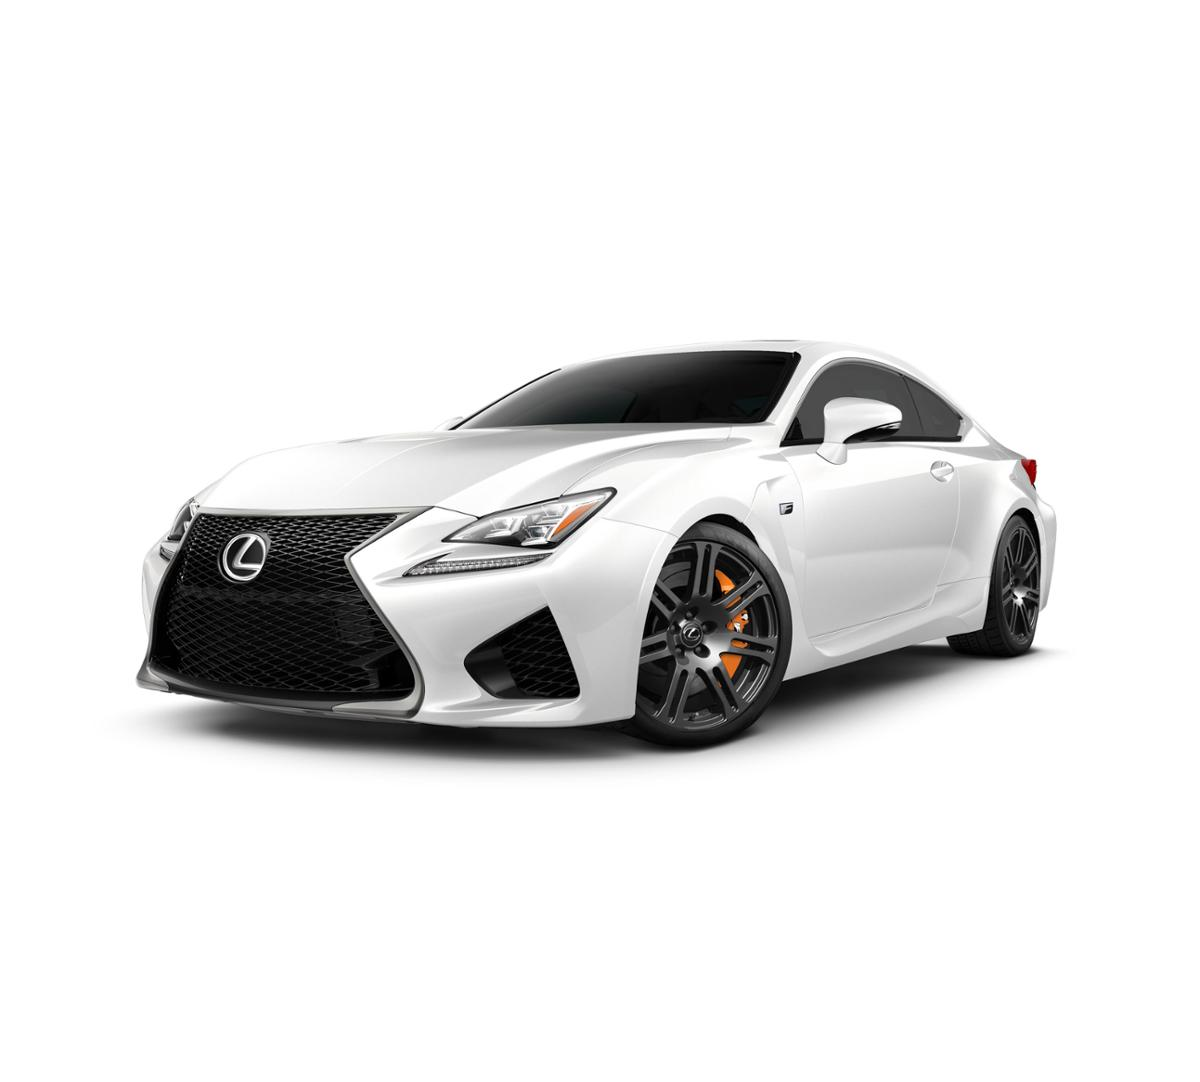 2017 Lexus RC F Vehicle Photo in Santa Monica, CA 90404